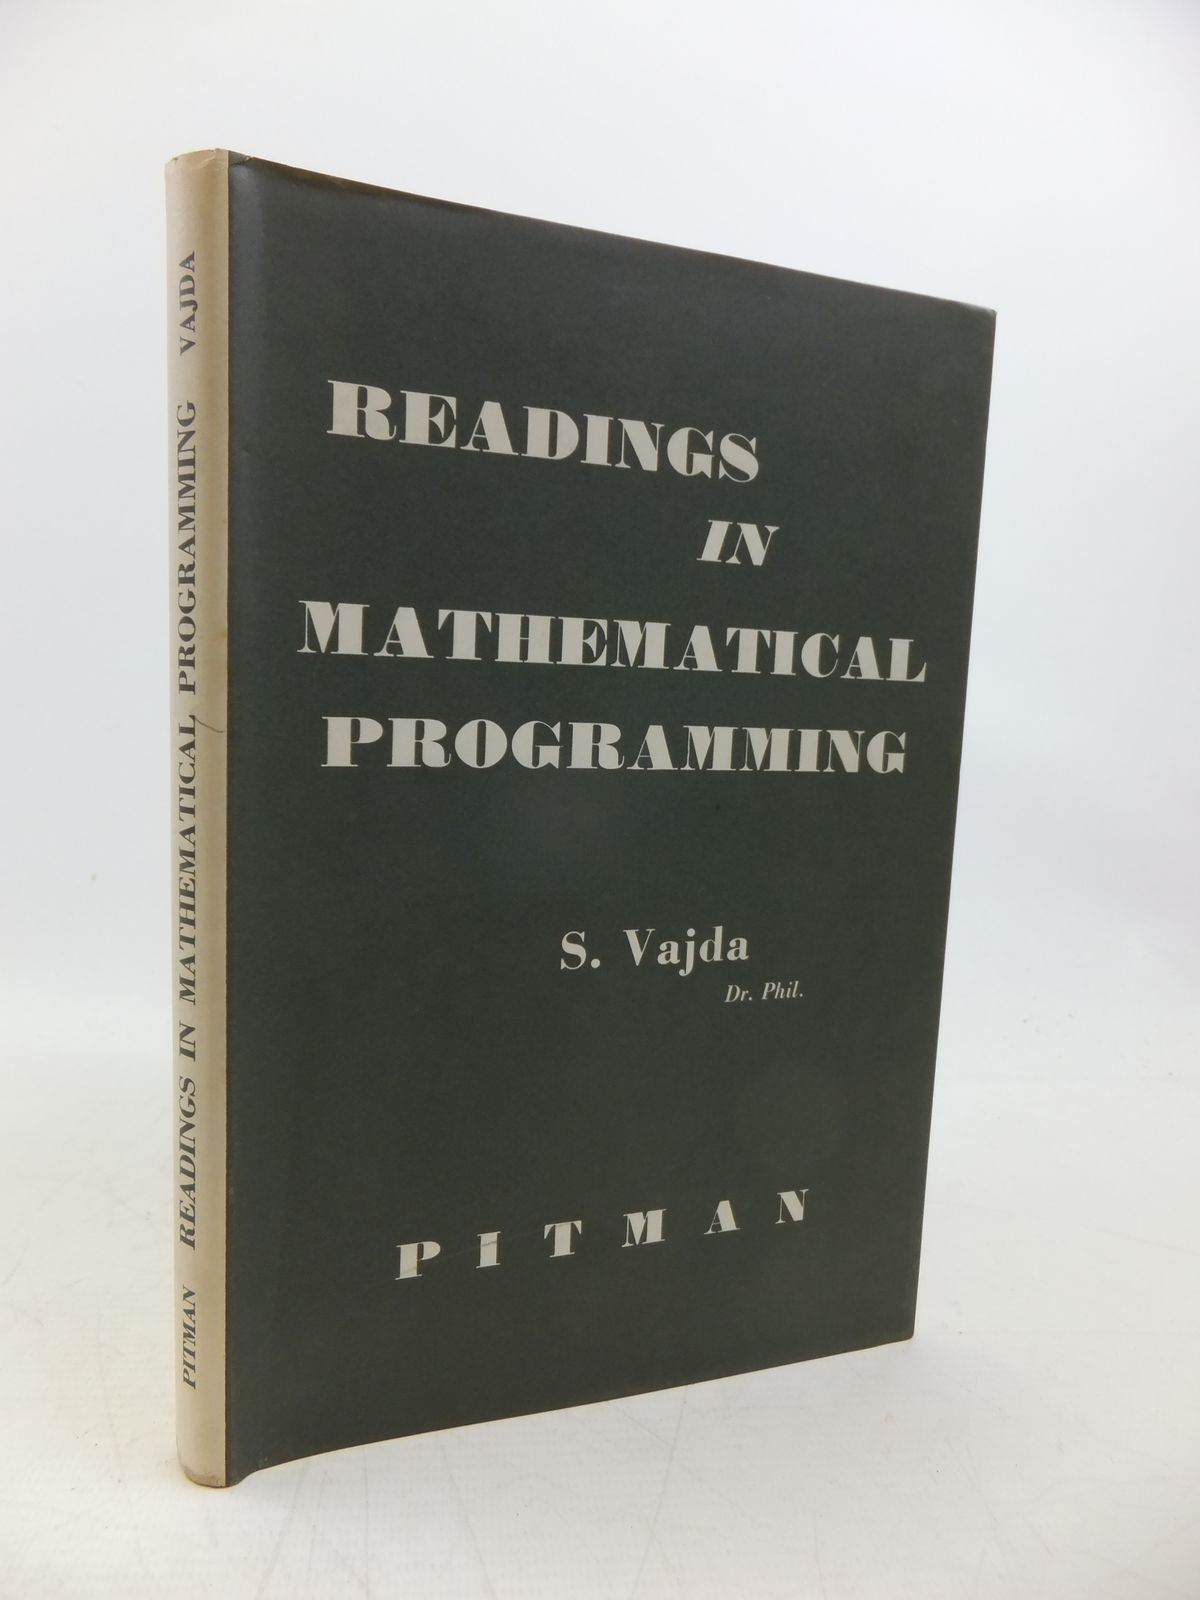 Photo of READINGS IN MATHEMATICAL PROGRAMMING written by Vajda, S. published by Sir Isaac Pitman & Sons Ltd. (STOCK CODE: 2120317)  for sale by Stella & Rose's Books